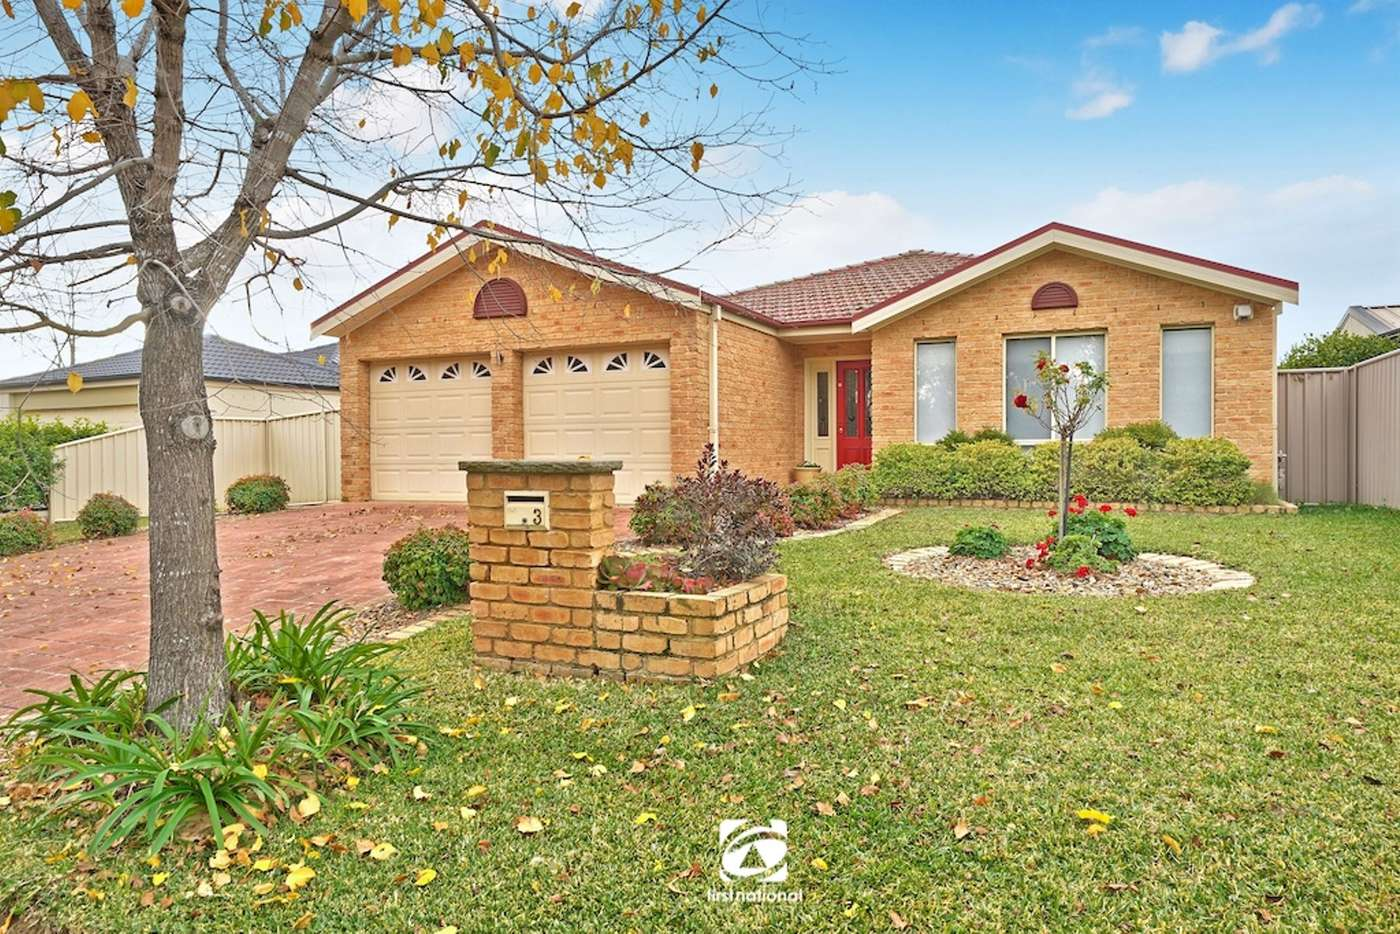 Main view of Homely house listing, 3 Albury Court, Harrington Park NSW 2567